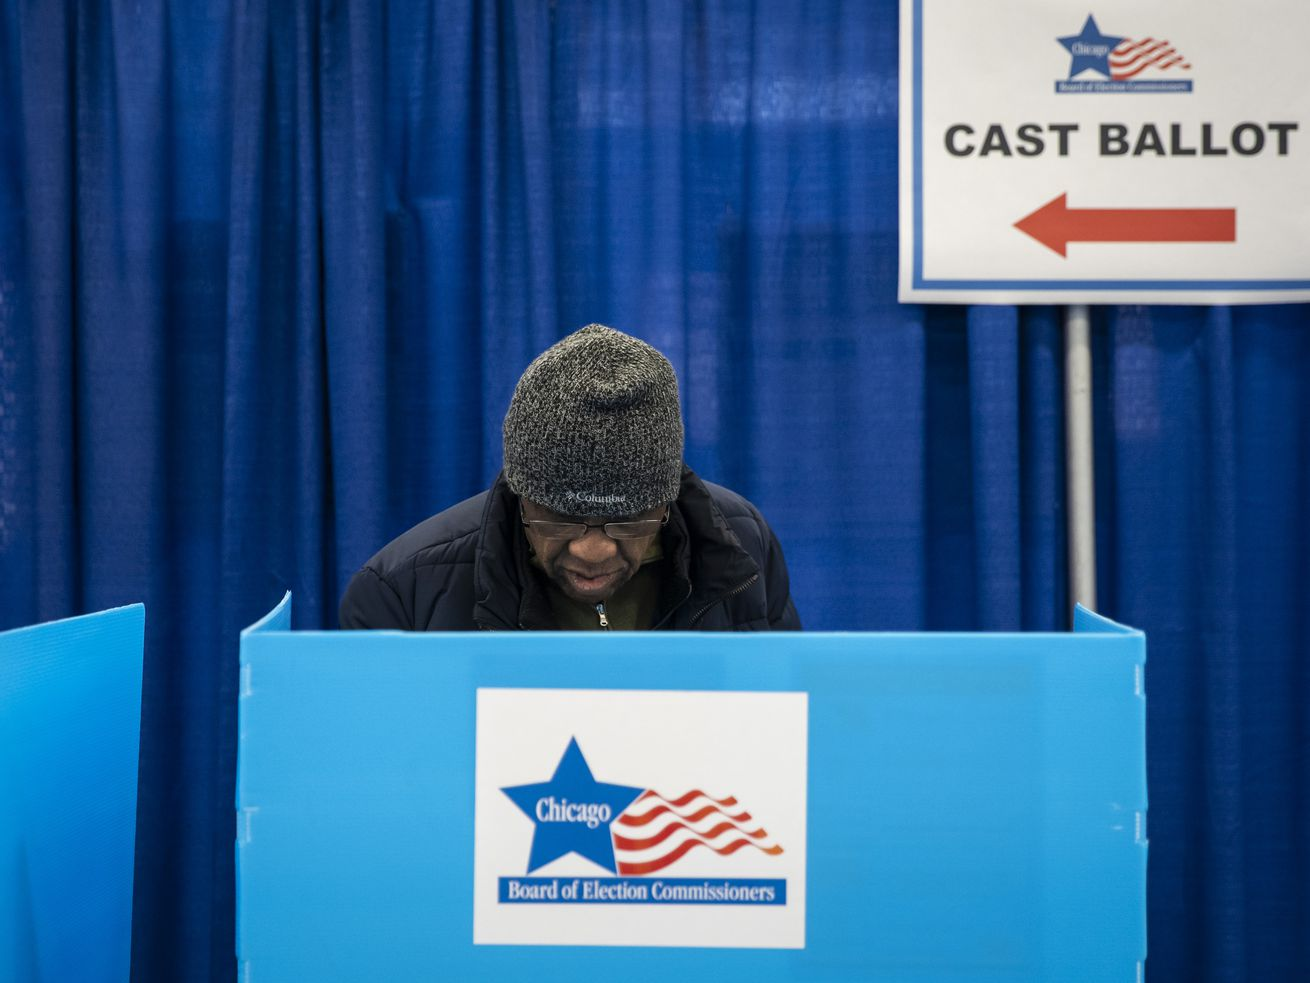 How to vote in the November election in Illinois